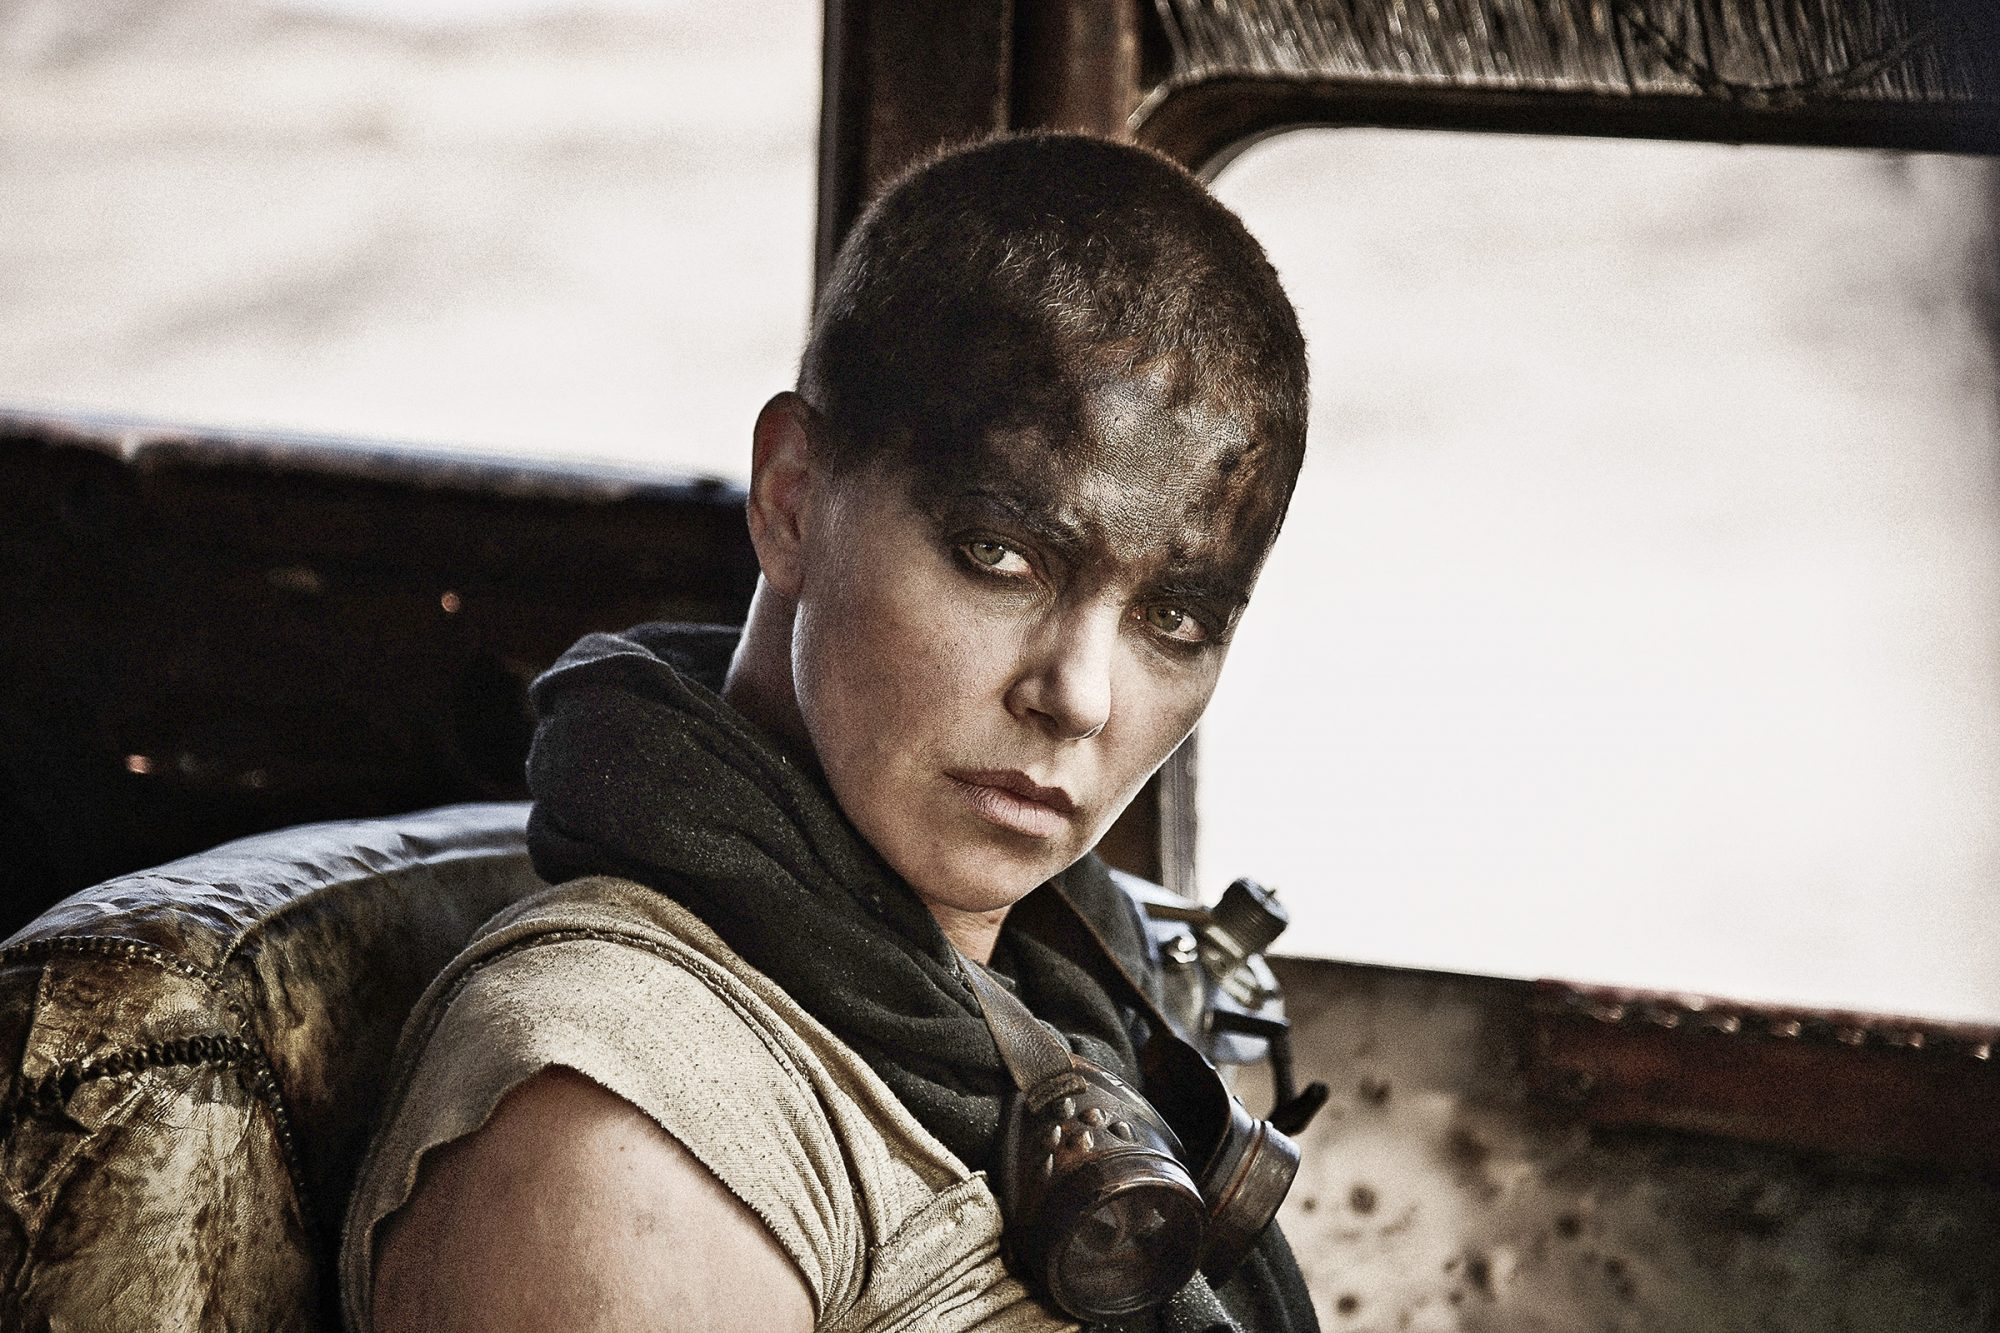 Mad Max: Fury Road (2015) Charlize Theron